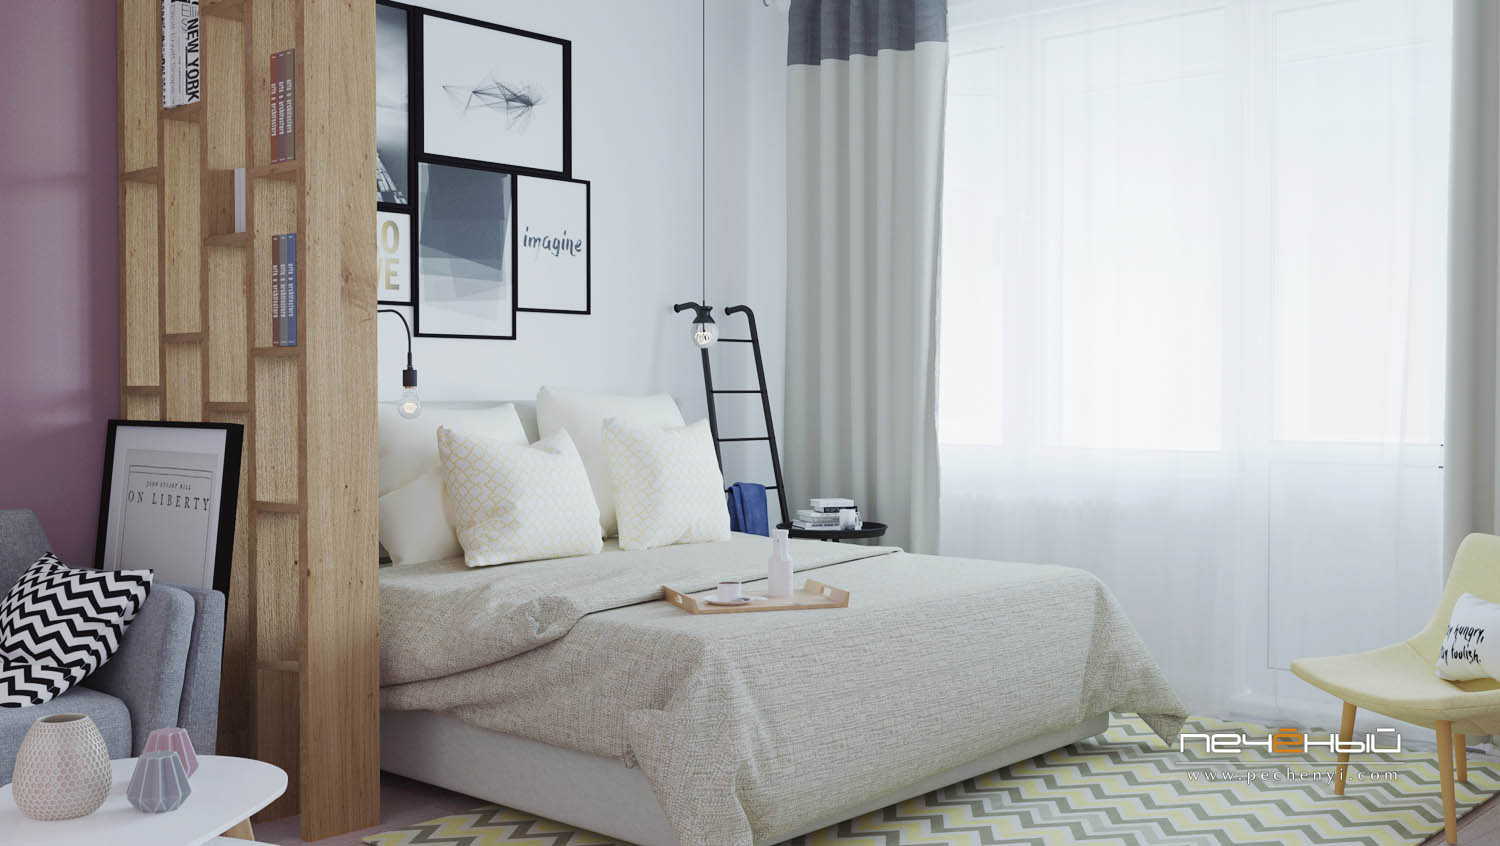 The sleeping space is taken by a large bed, wall sconces, a gallery wall and a ladder shelf for storage